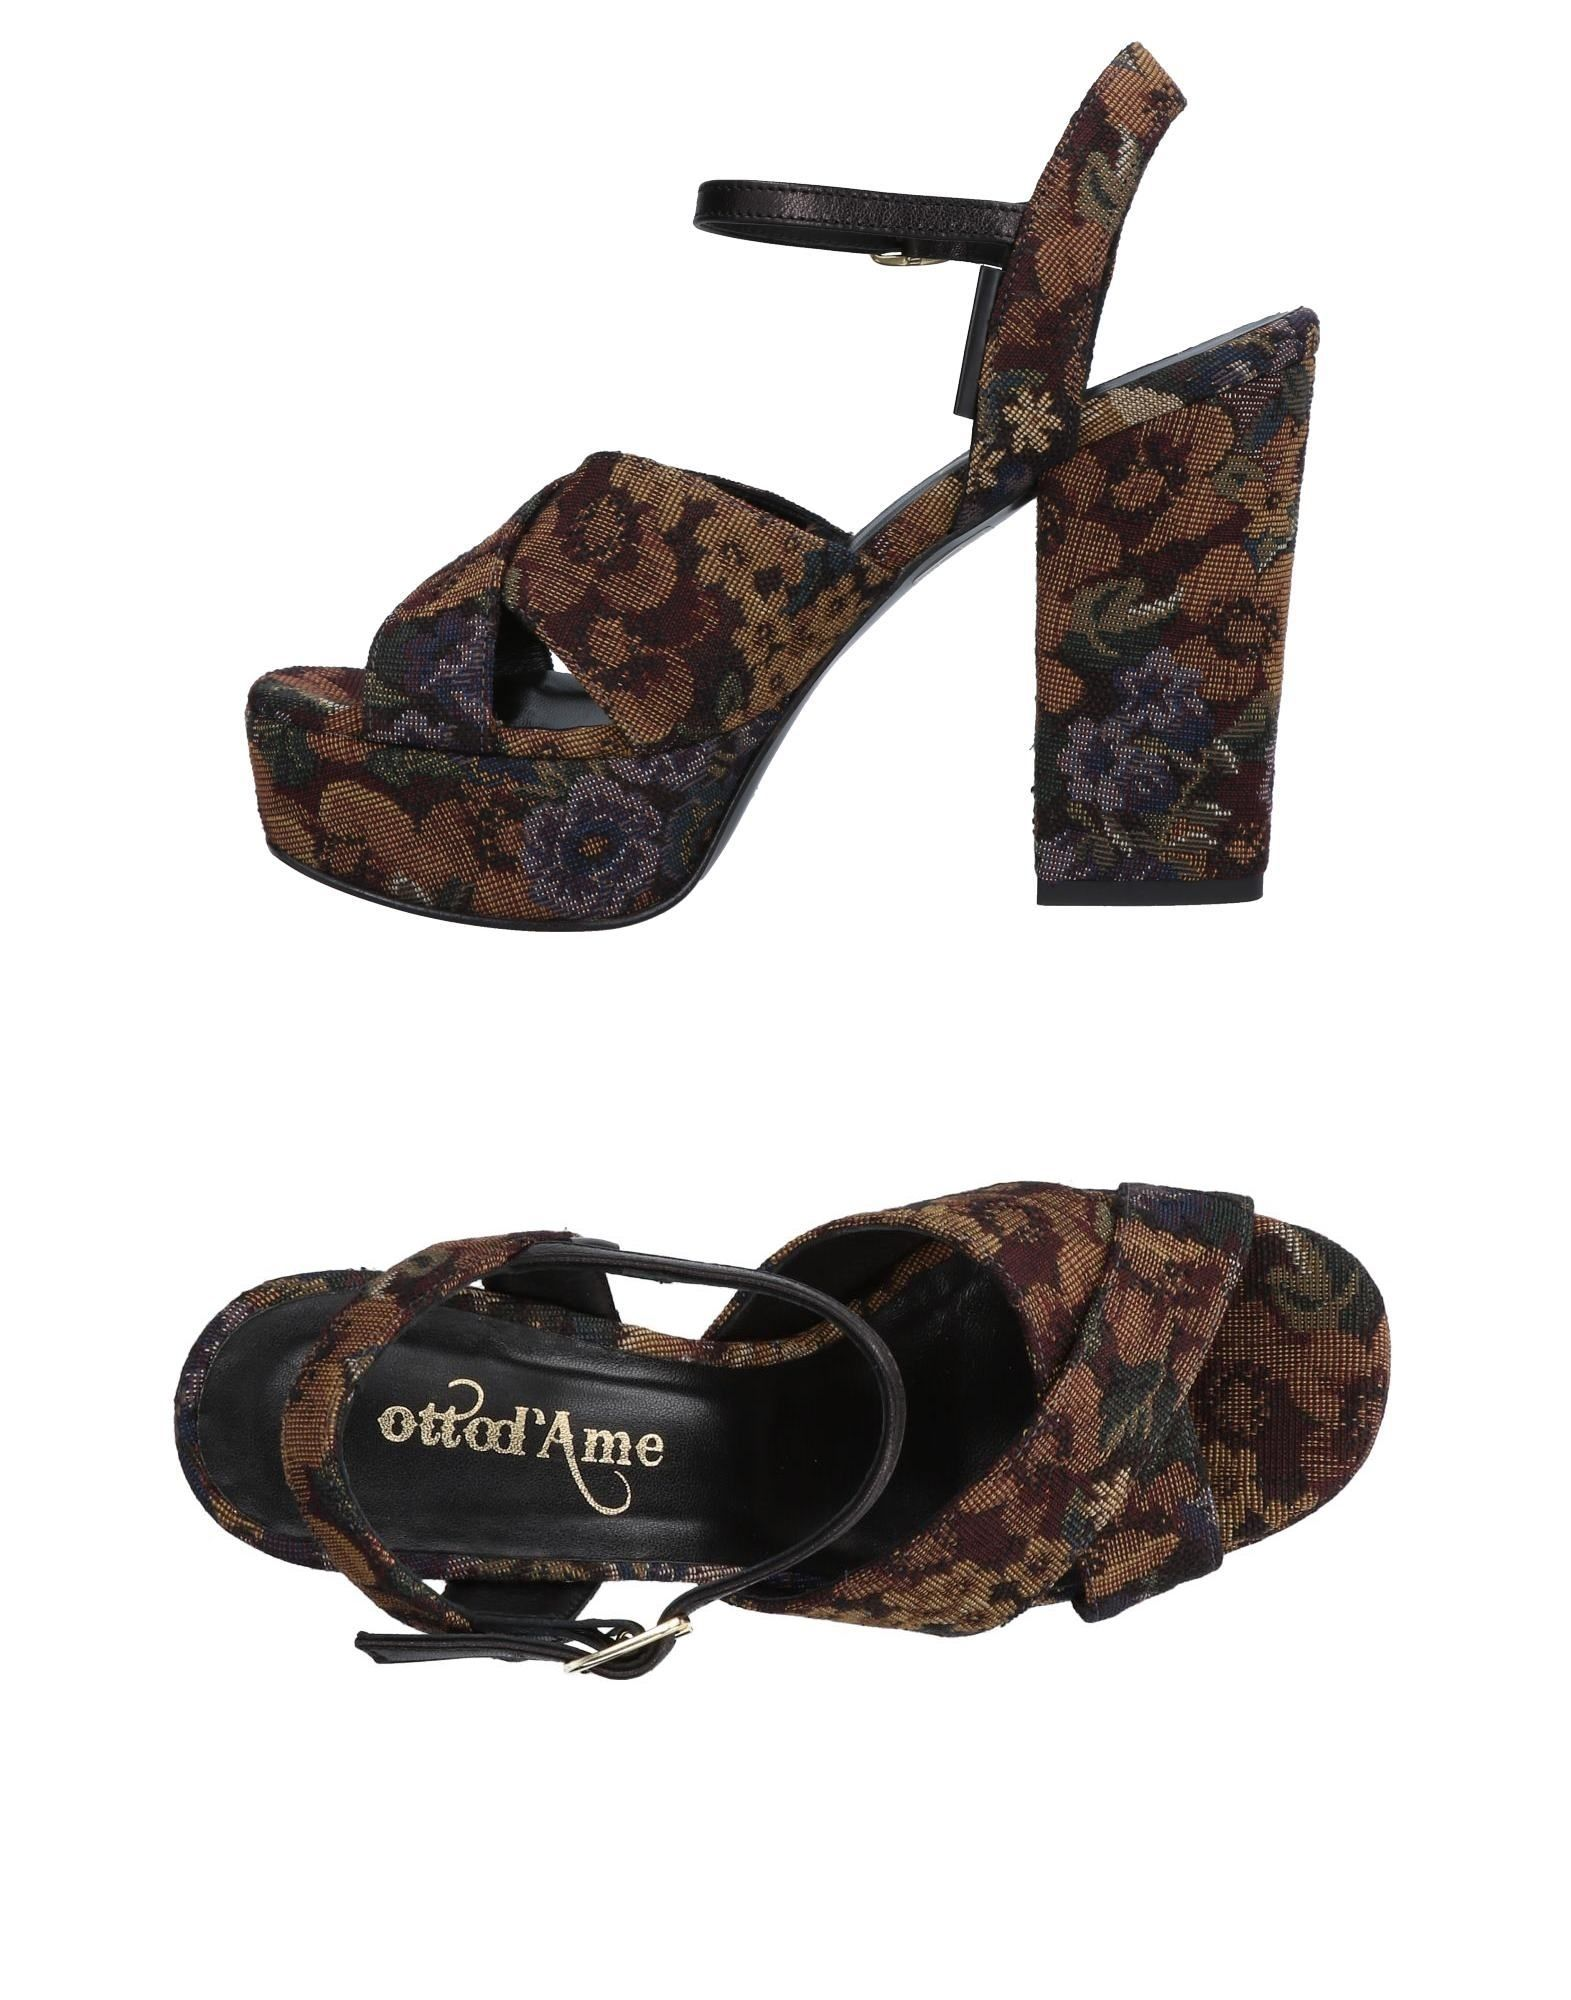 Ottod'ame on Sandals - Women Ottod'ame Sandals online on Ottod'ame  Canada - 11479621JW 8a9a8e